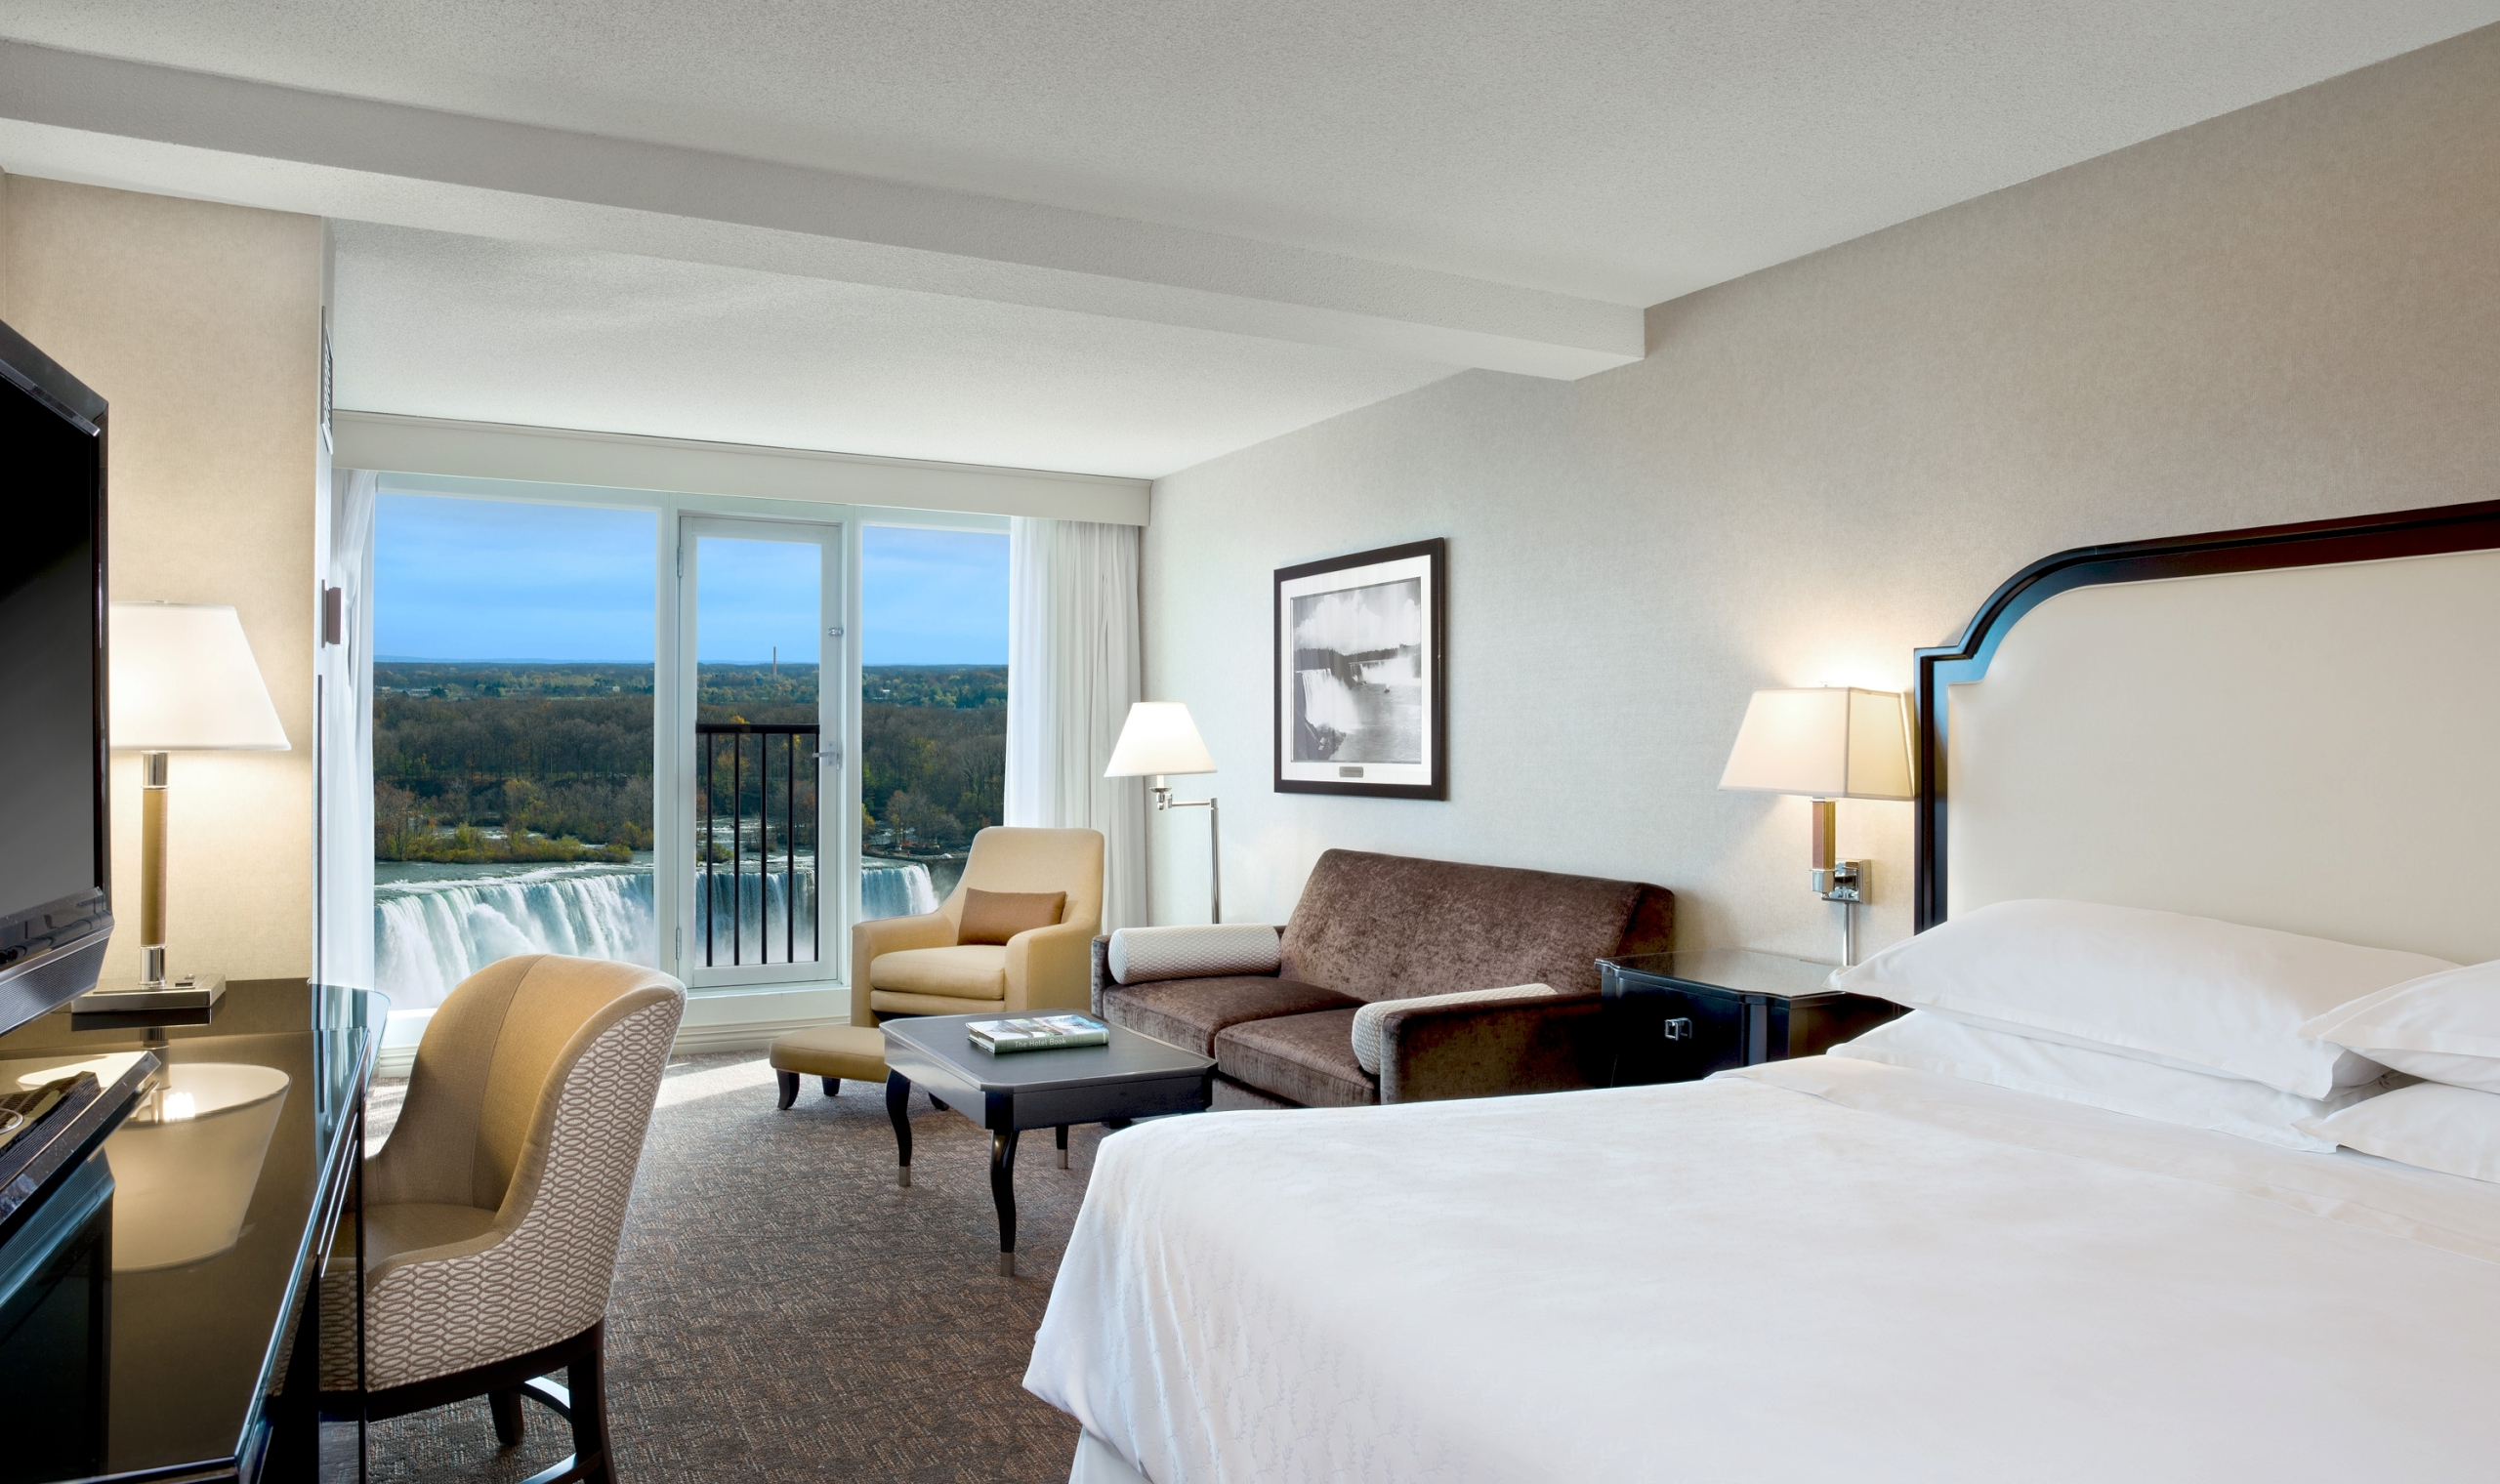 Hotels With Jacuzzi In Room Toronto Ontario